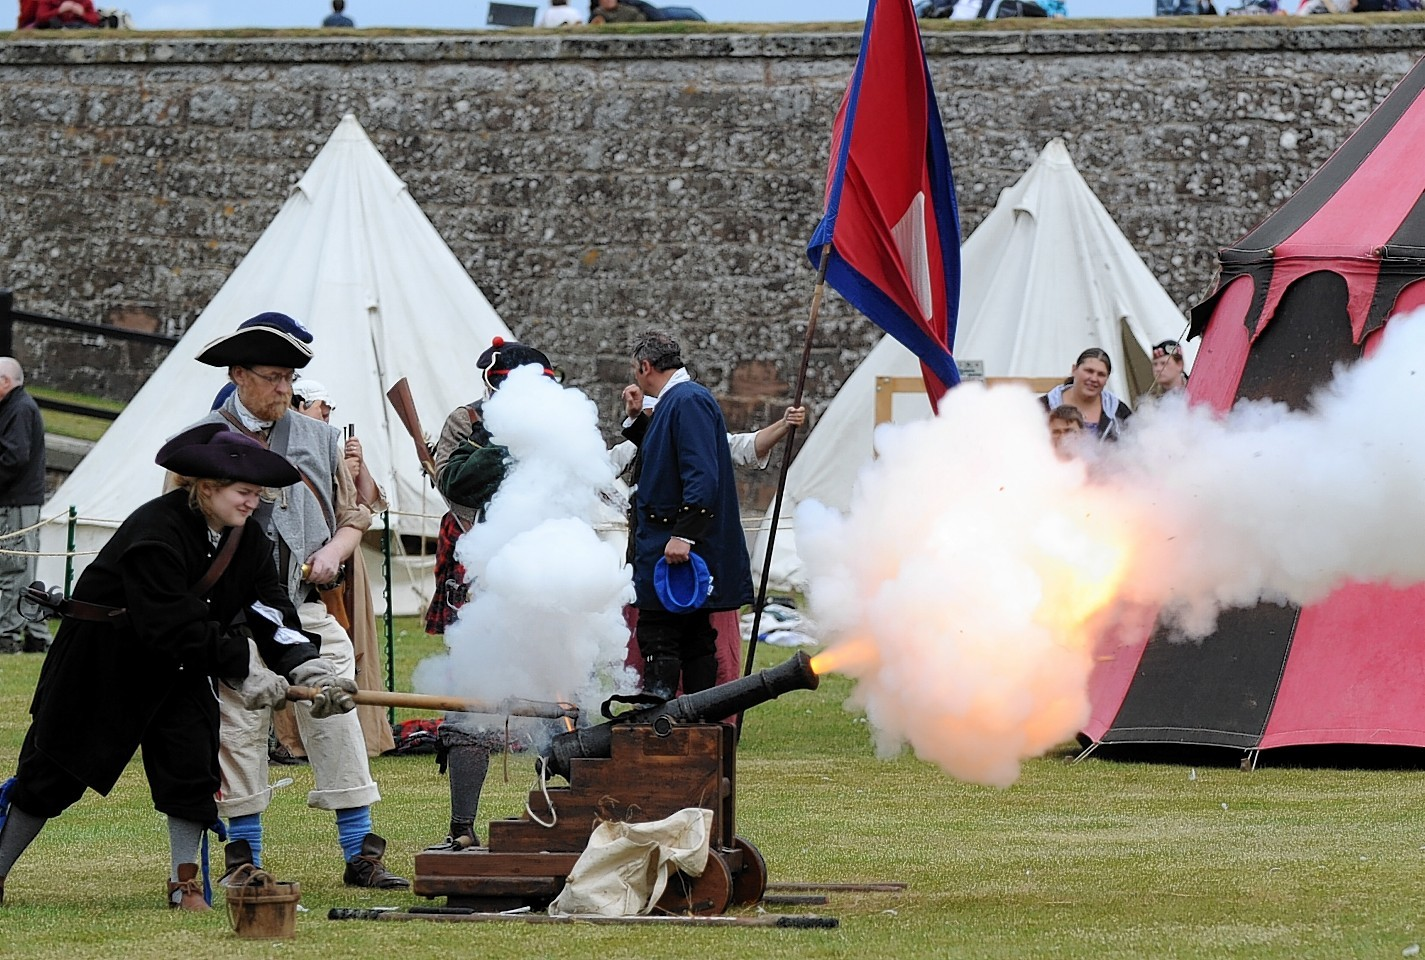 The popular Celebration of the Centuries event returns to Fort George next month.